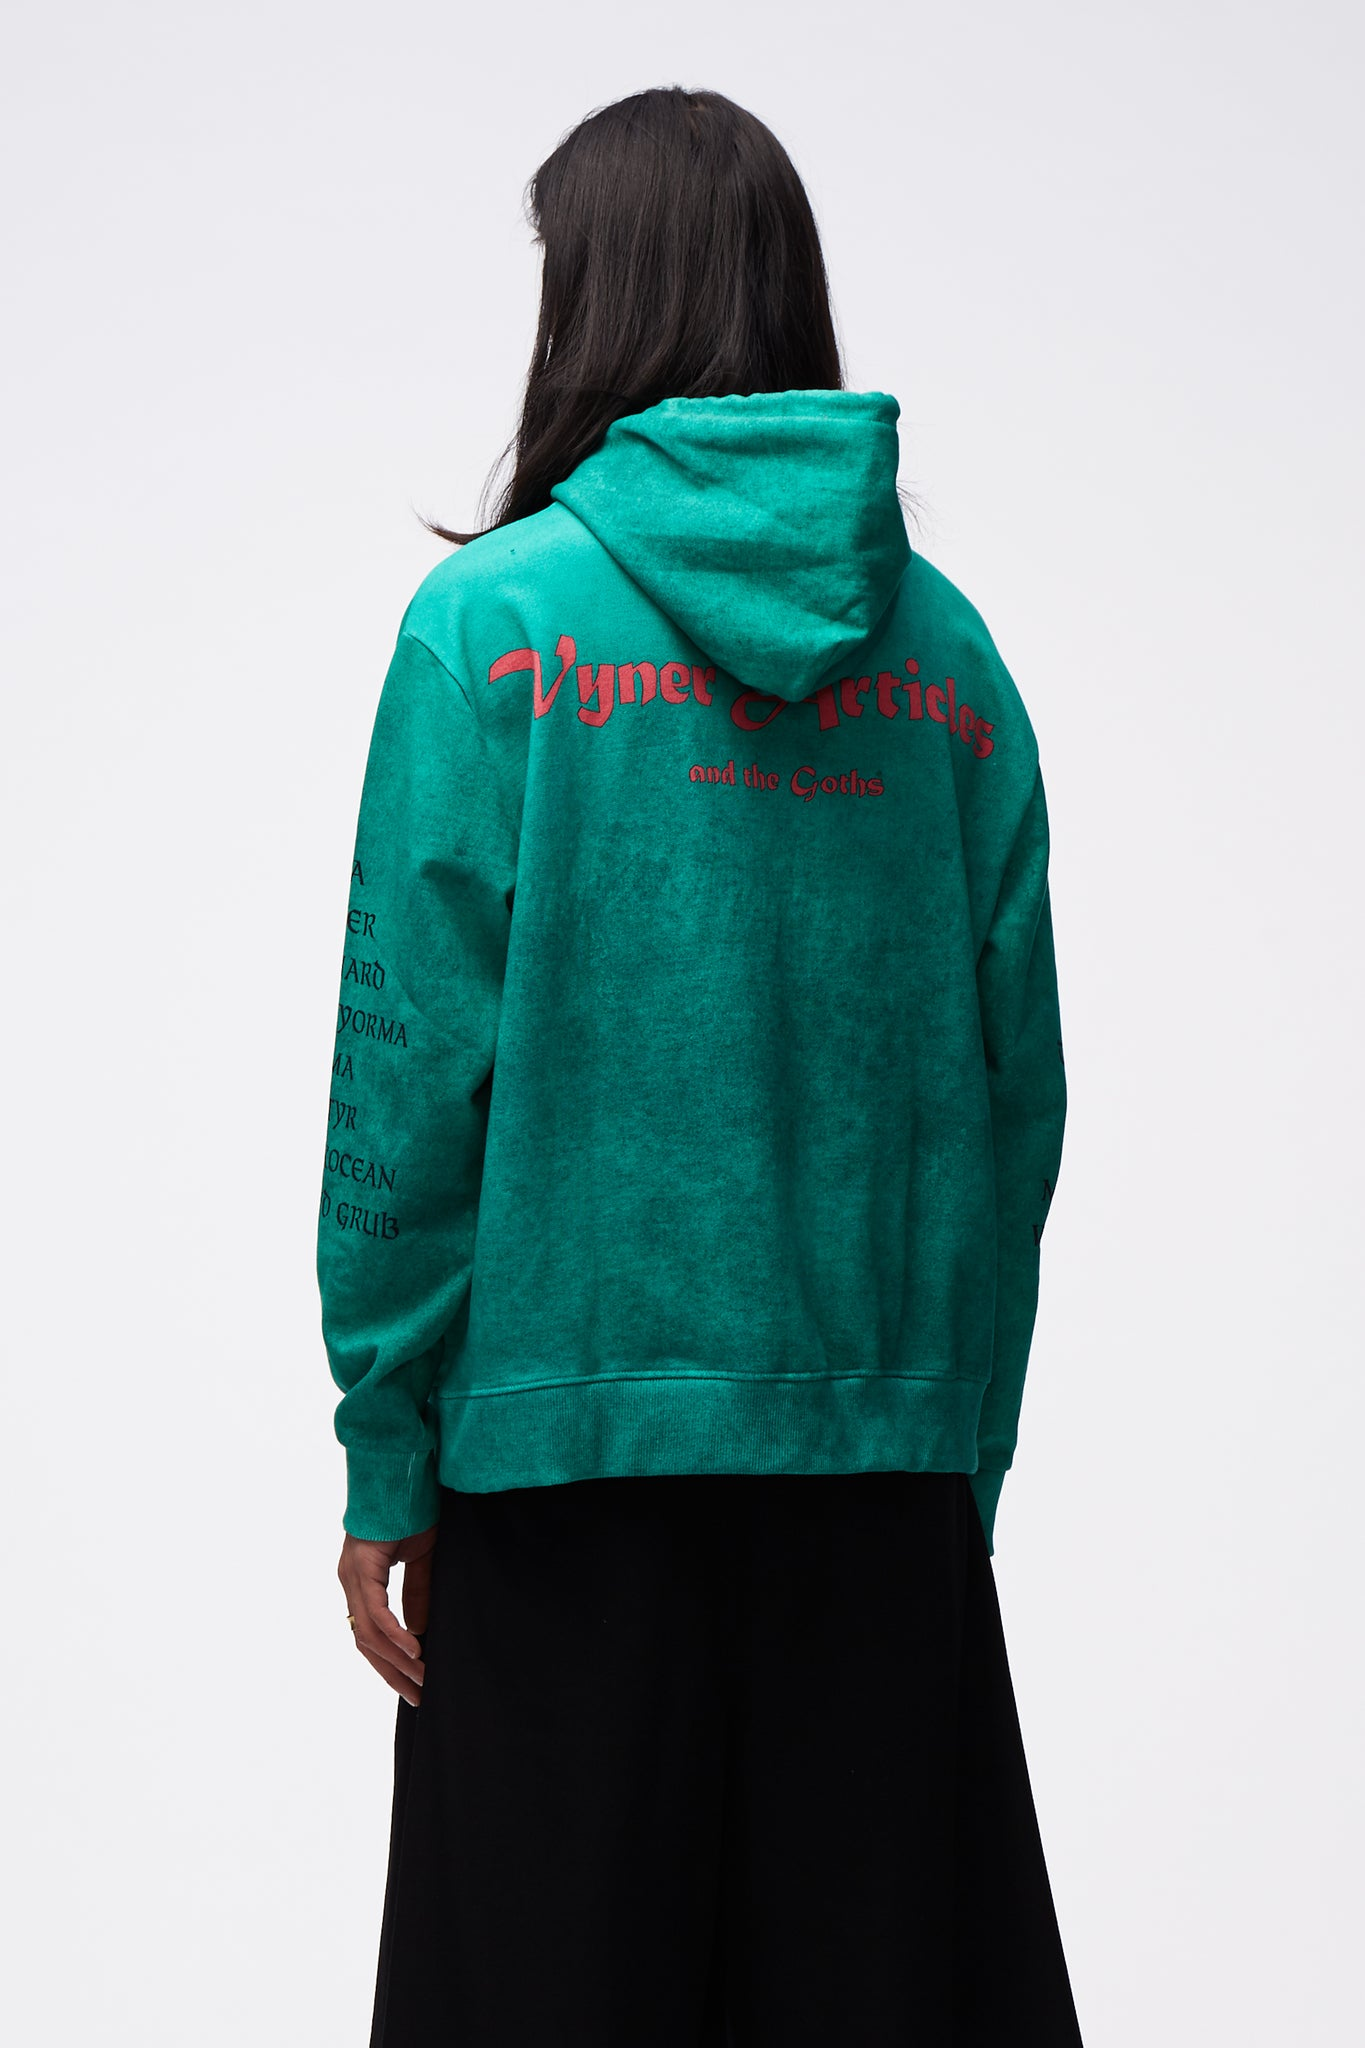 Hoodie With The Goths Digital PR Green